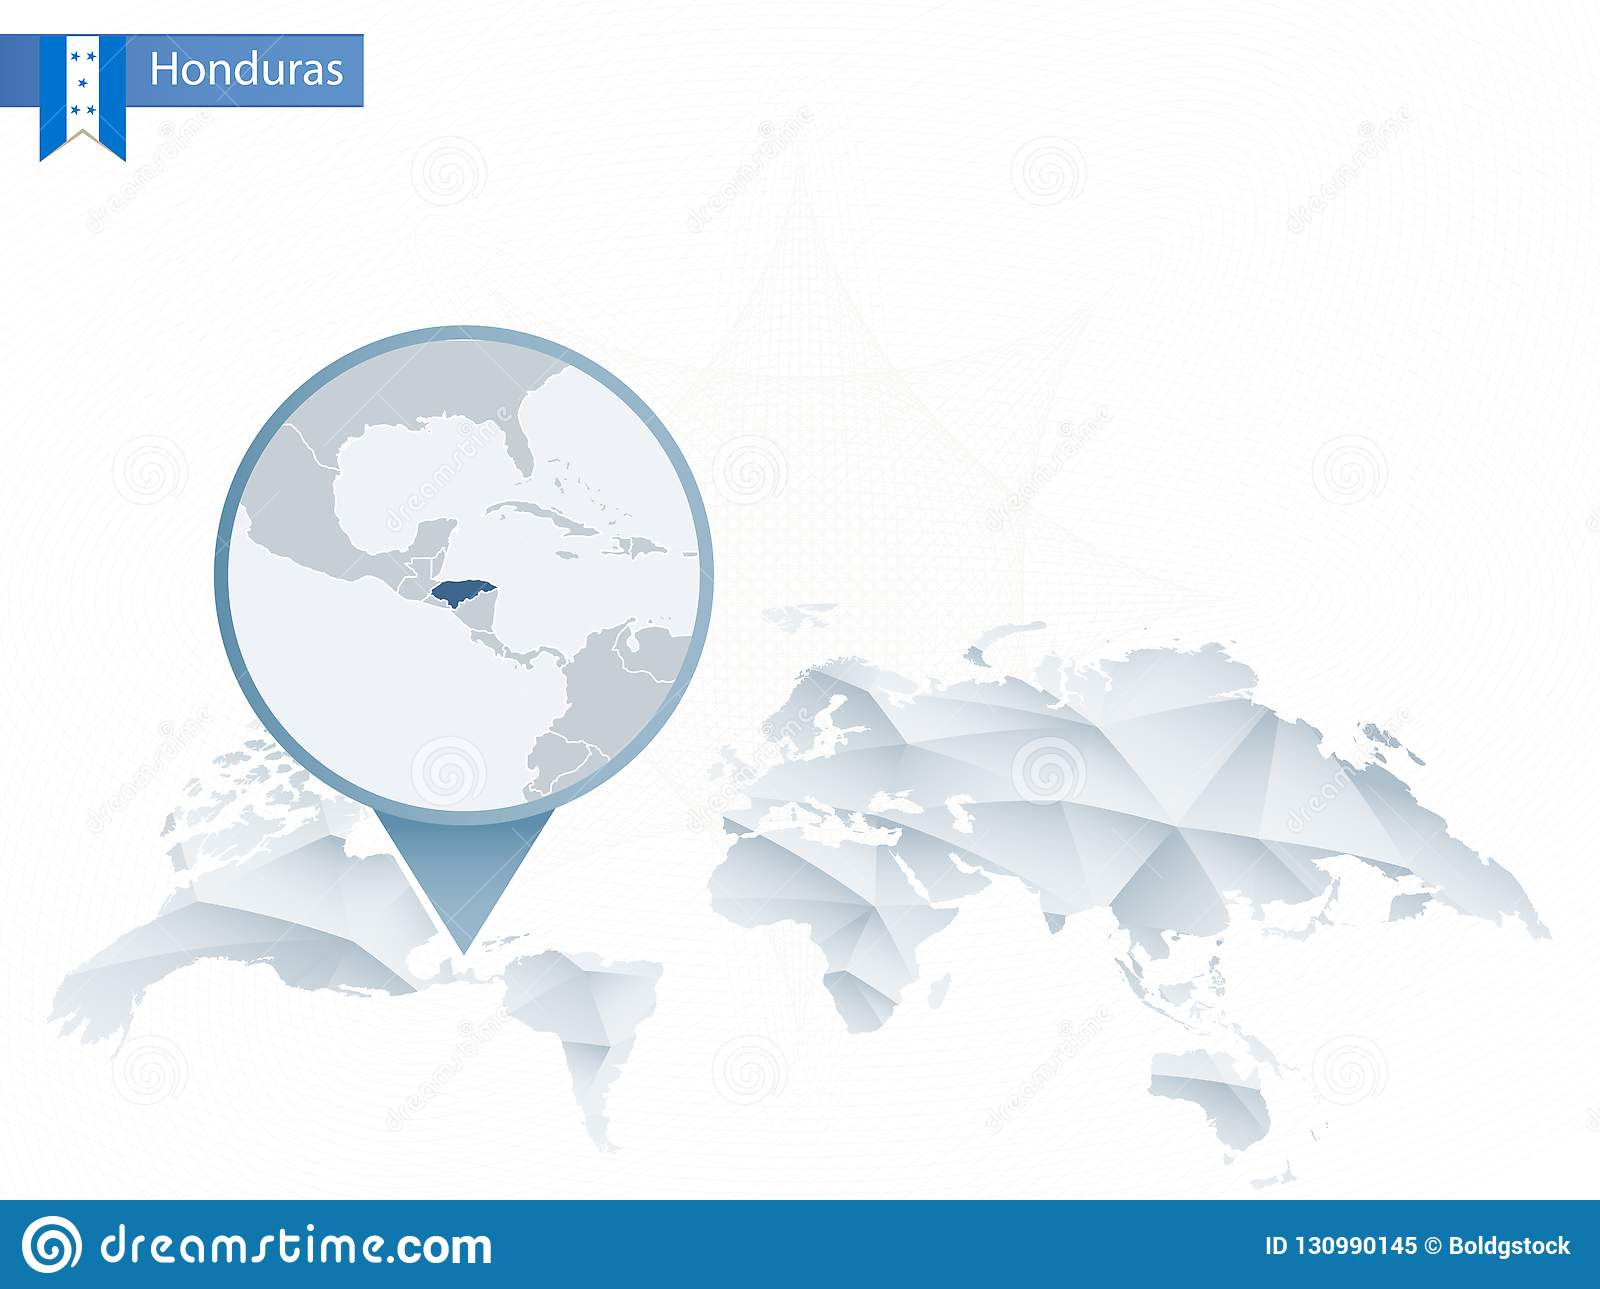 Abstract Rounded World Map With Pinned Detailed Honduras Map. Stock ...